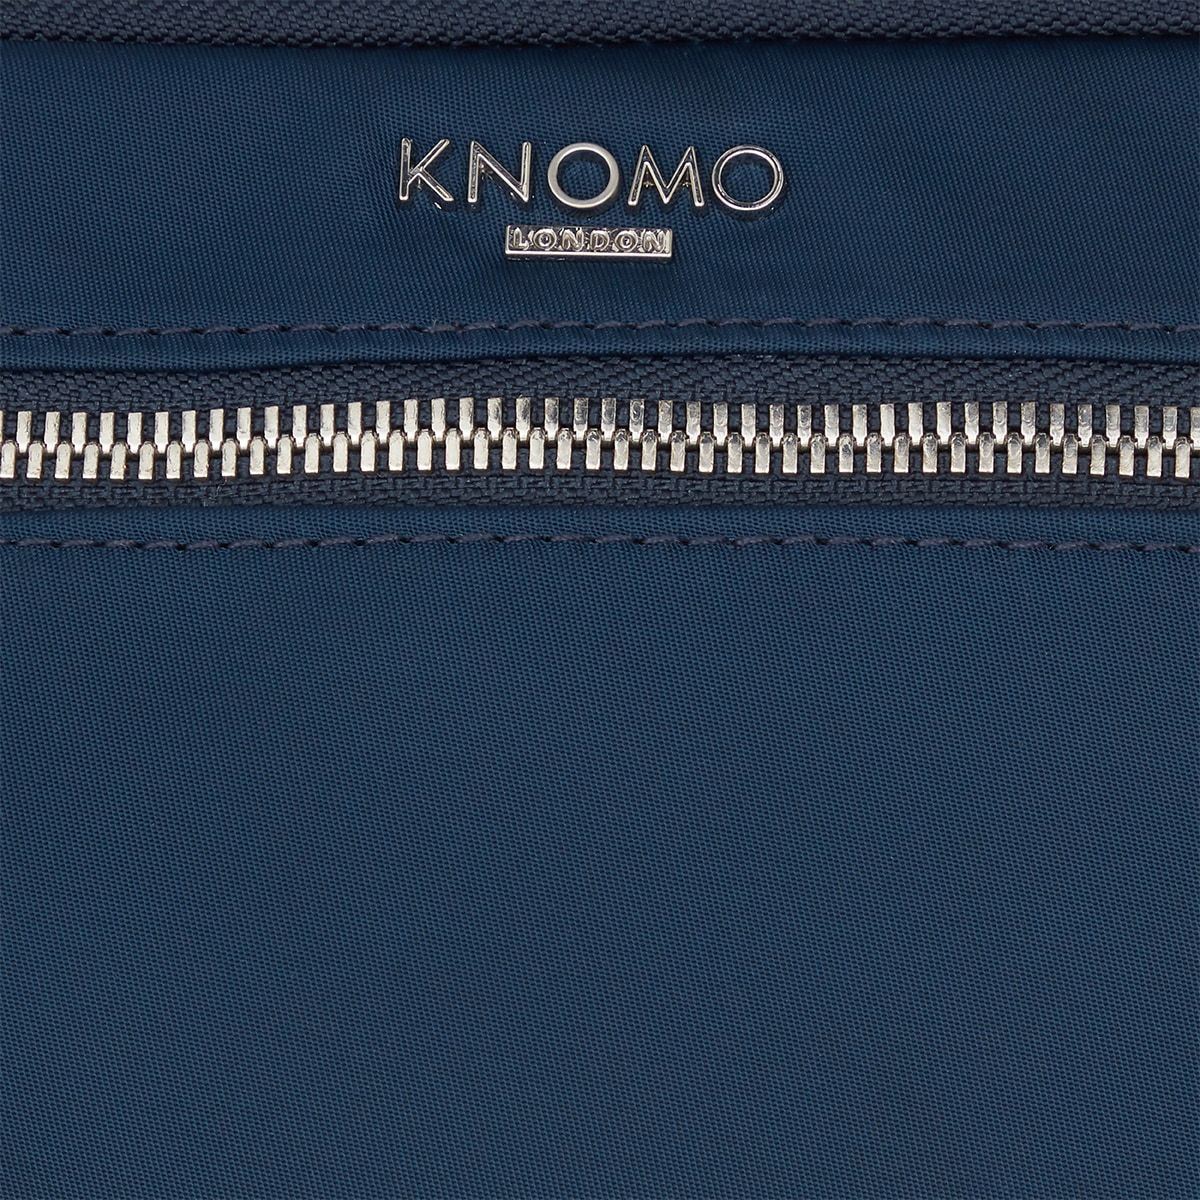 Knomad Travel Wallet Organizer For Travel -  | KNOMO